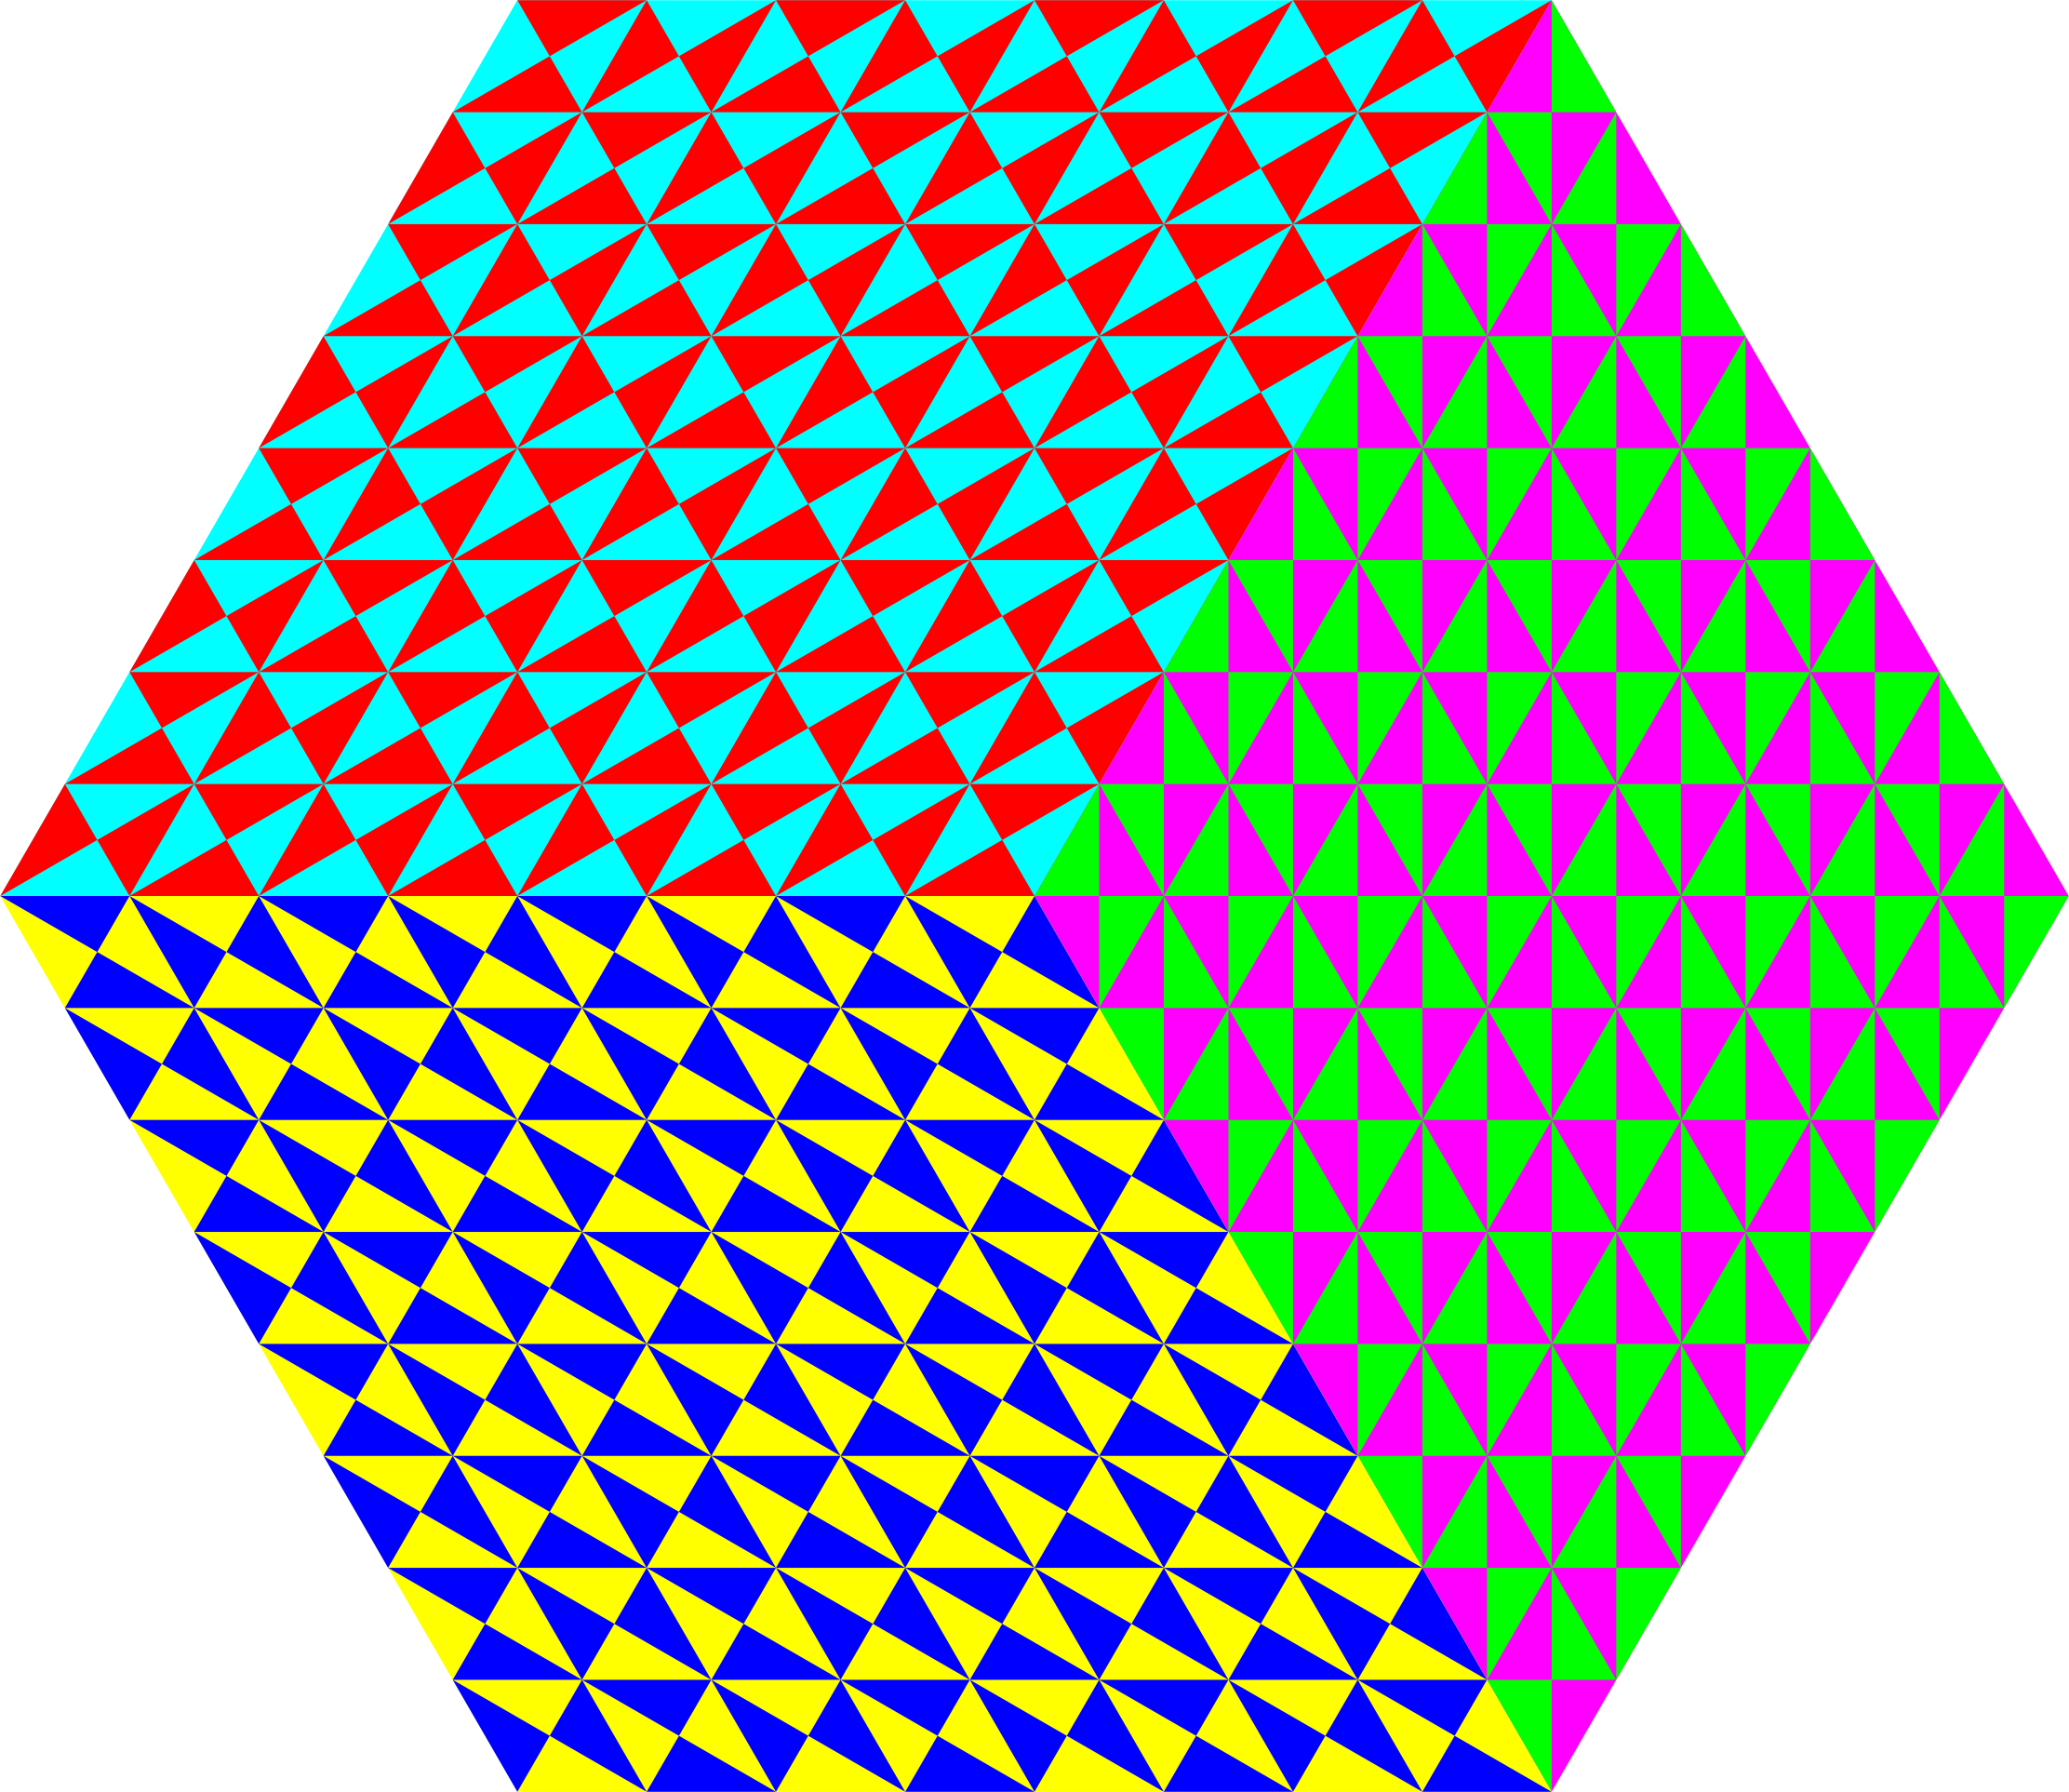 remix of 8-23-2017 triangle design using 6 colors by 10binary